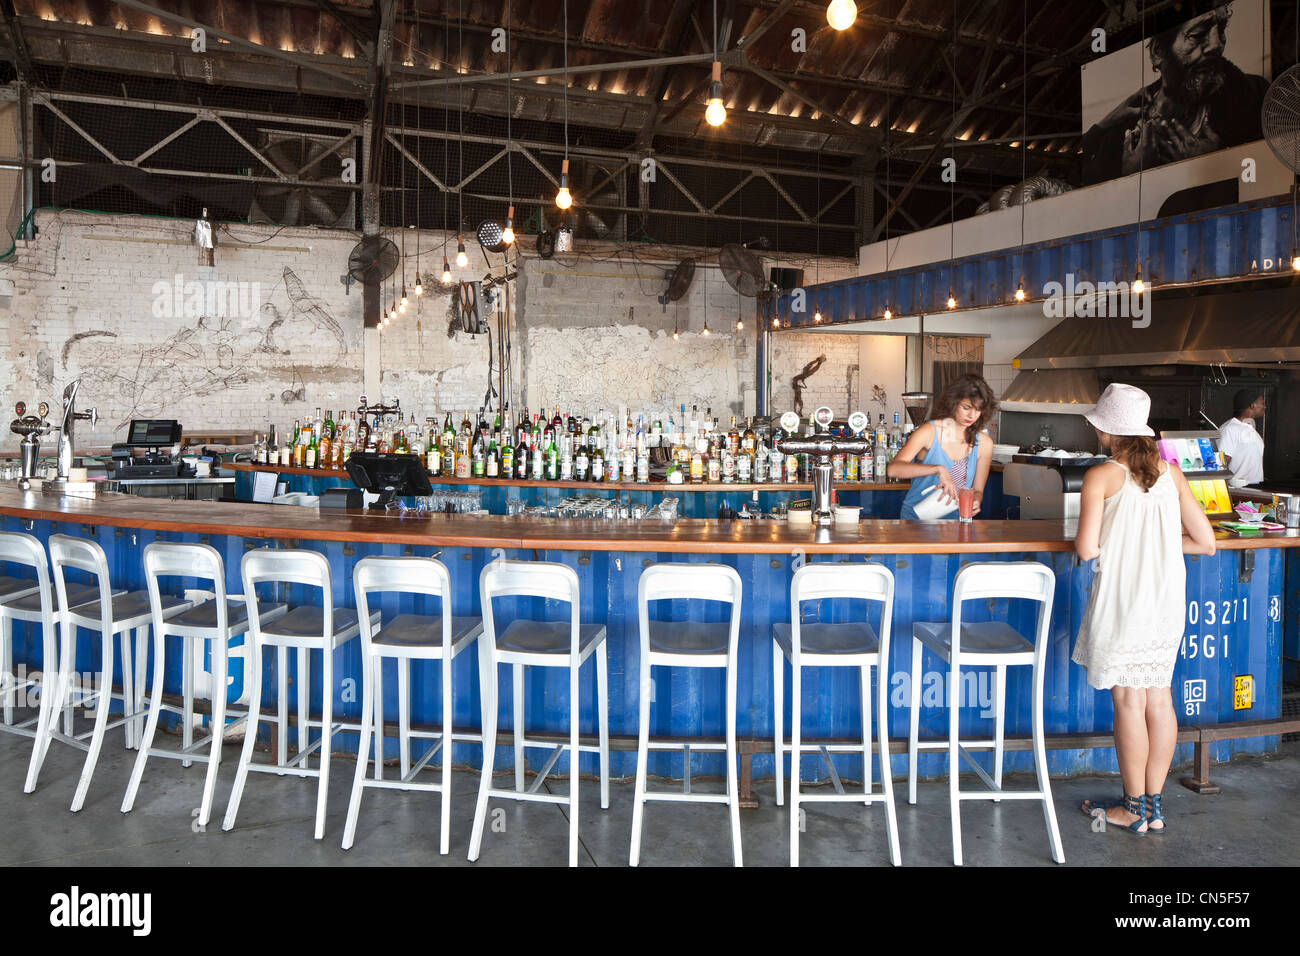 Israel, Tel Aviv, Jaffa, port, The Container restaurant, counter made of a container - Stock Image